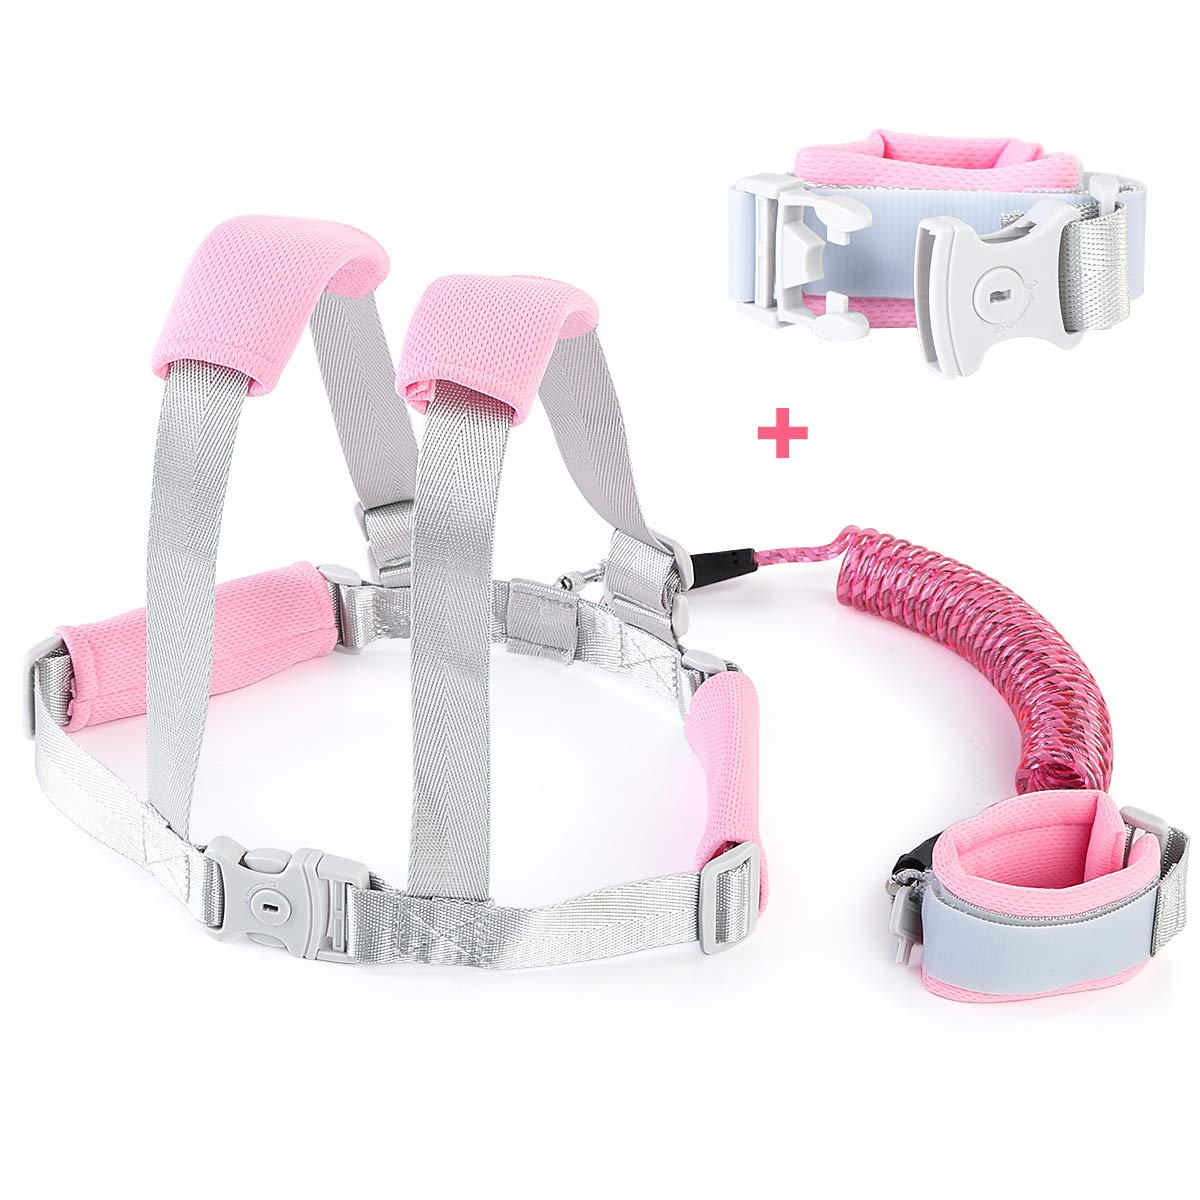 2-in-1 Kids Anti Lost Safety Belts and Toddler Wristband Kits, Reflective Wrist Link, Safety Anti-Lost Harness Leashes for Walking Shopping Outing Travel (Pink)